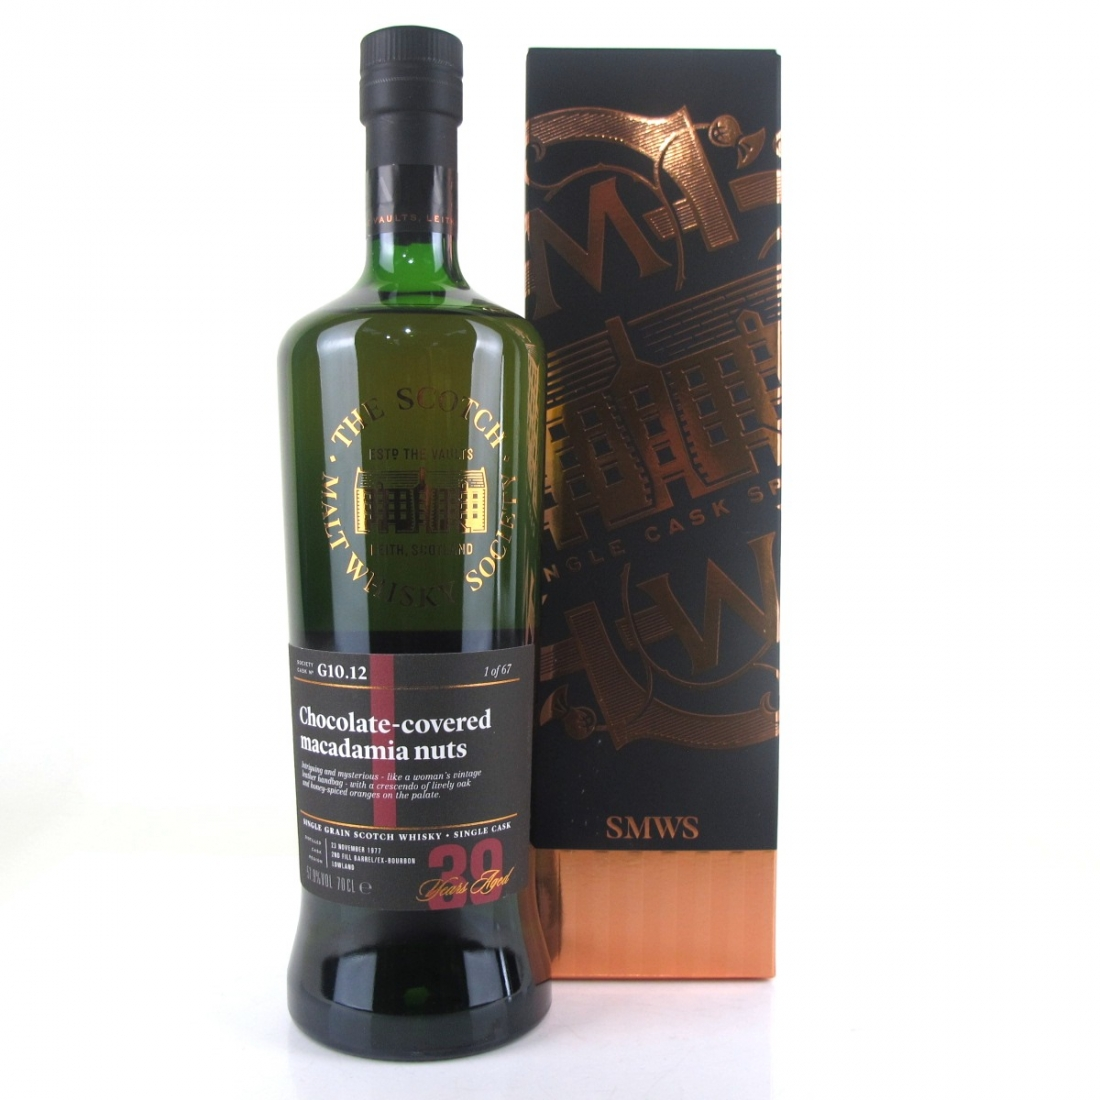 Strathclyde 1977 SMWS 39 Year Old G10.12